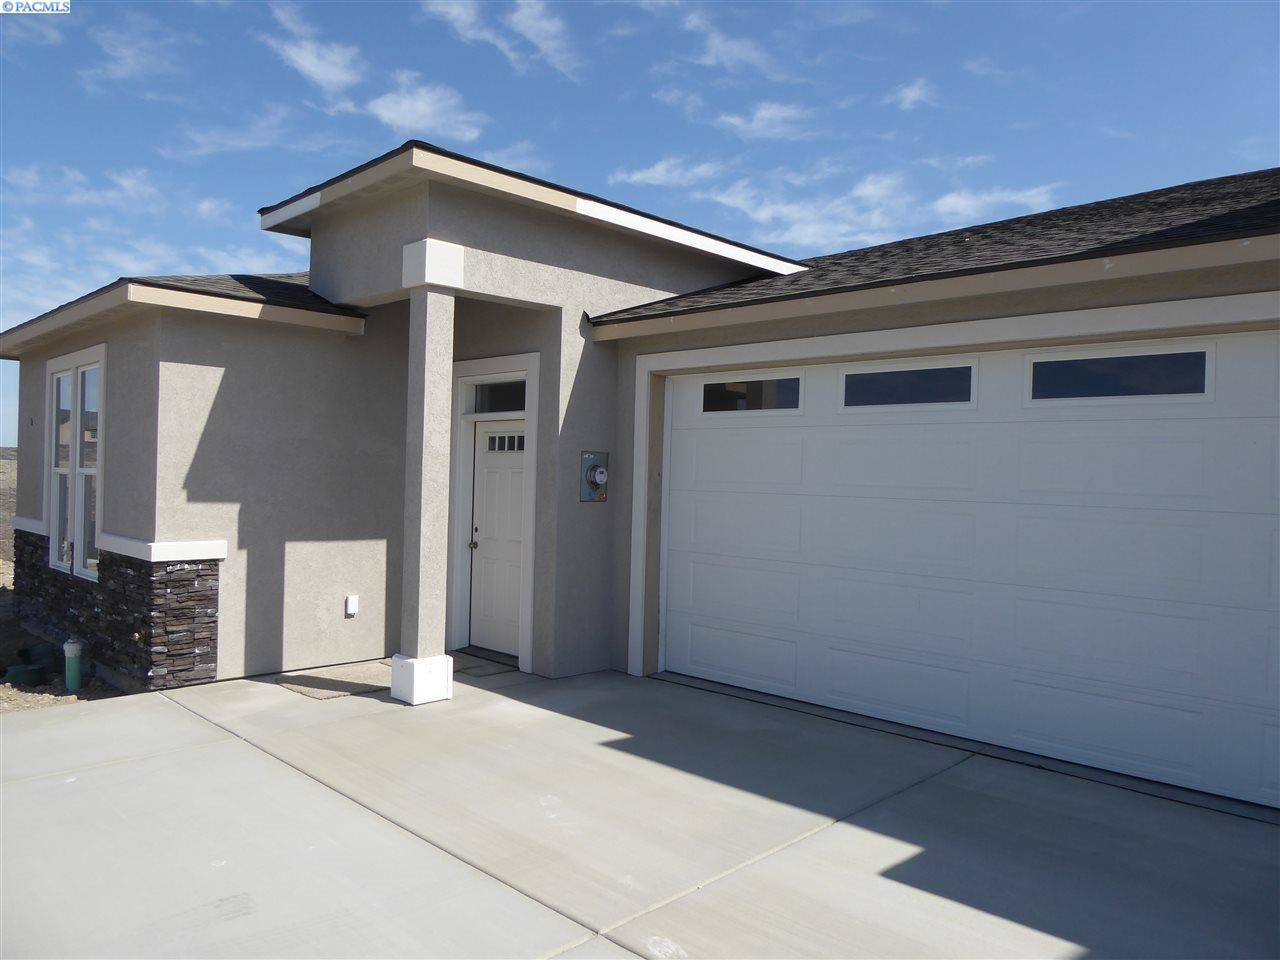 Photo of 3120 Carefree Loop, West Richland, WA 99353 (MLS # 245833)